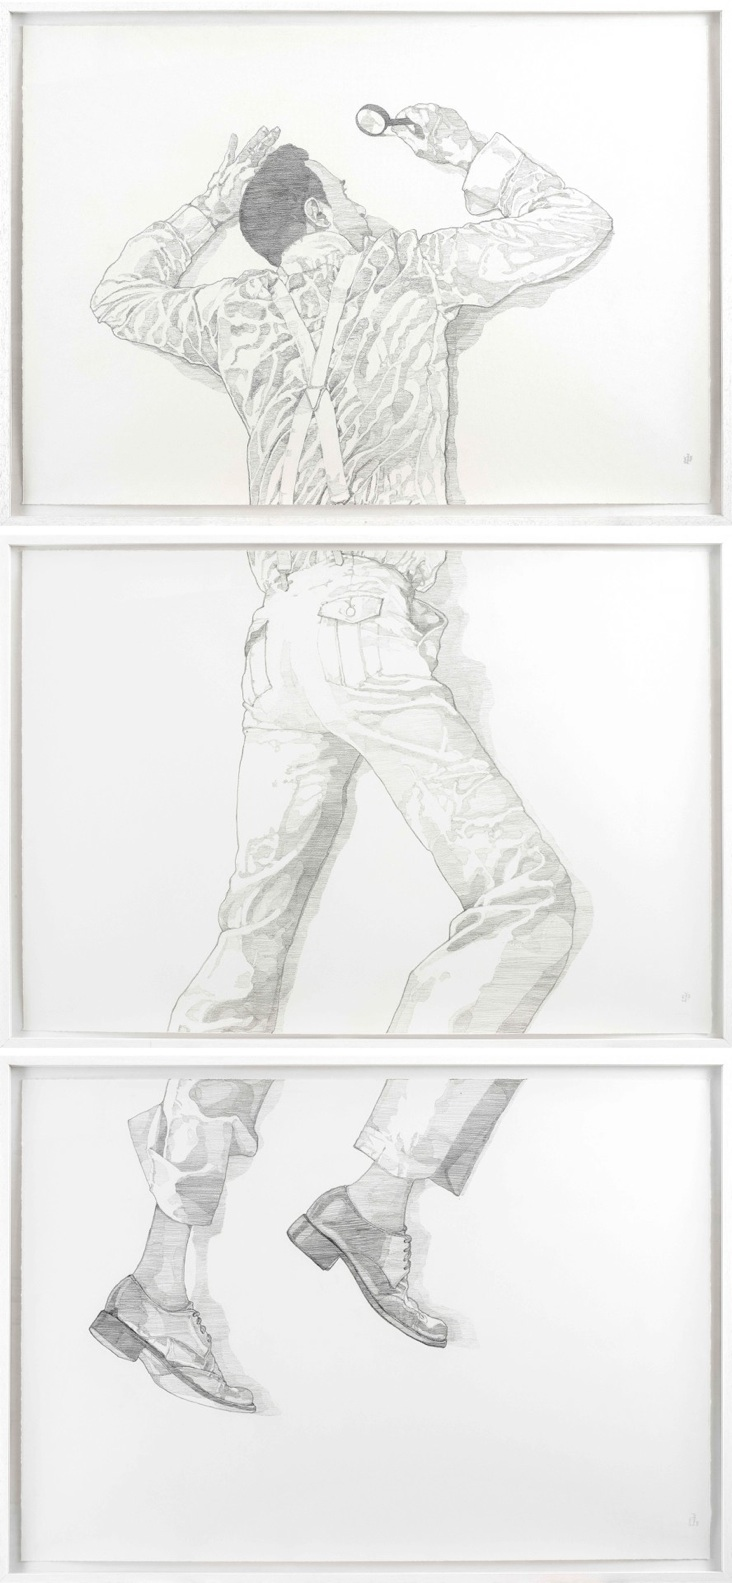 Surface (triptych), 2012  Pitt Pencil on paper. dimensions: 240*120 cm. Exhibited at    Made to Measure  Marie-Laure Fleisch gallery, Rome